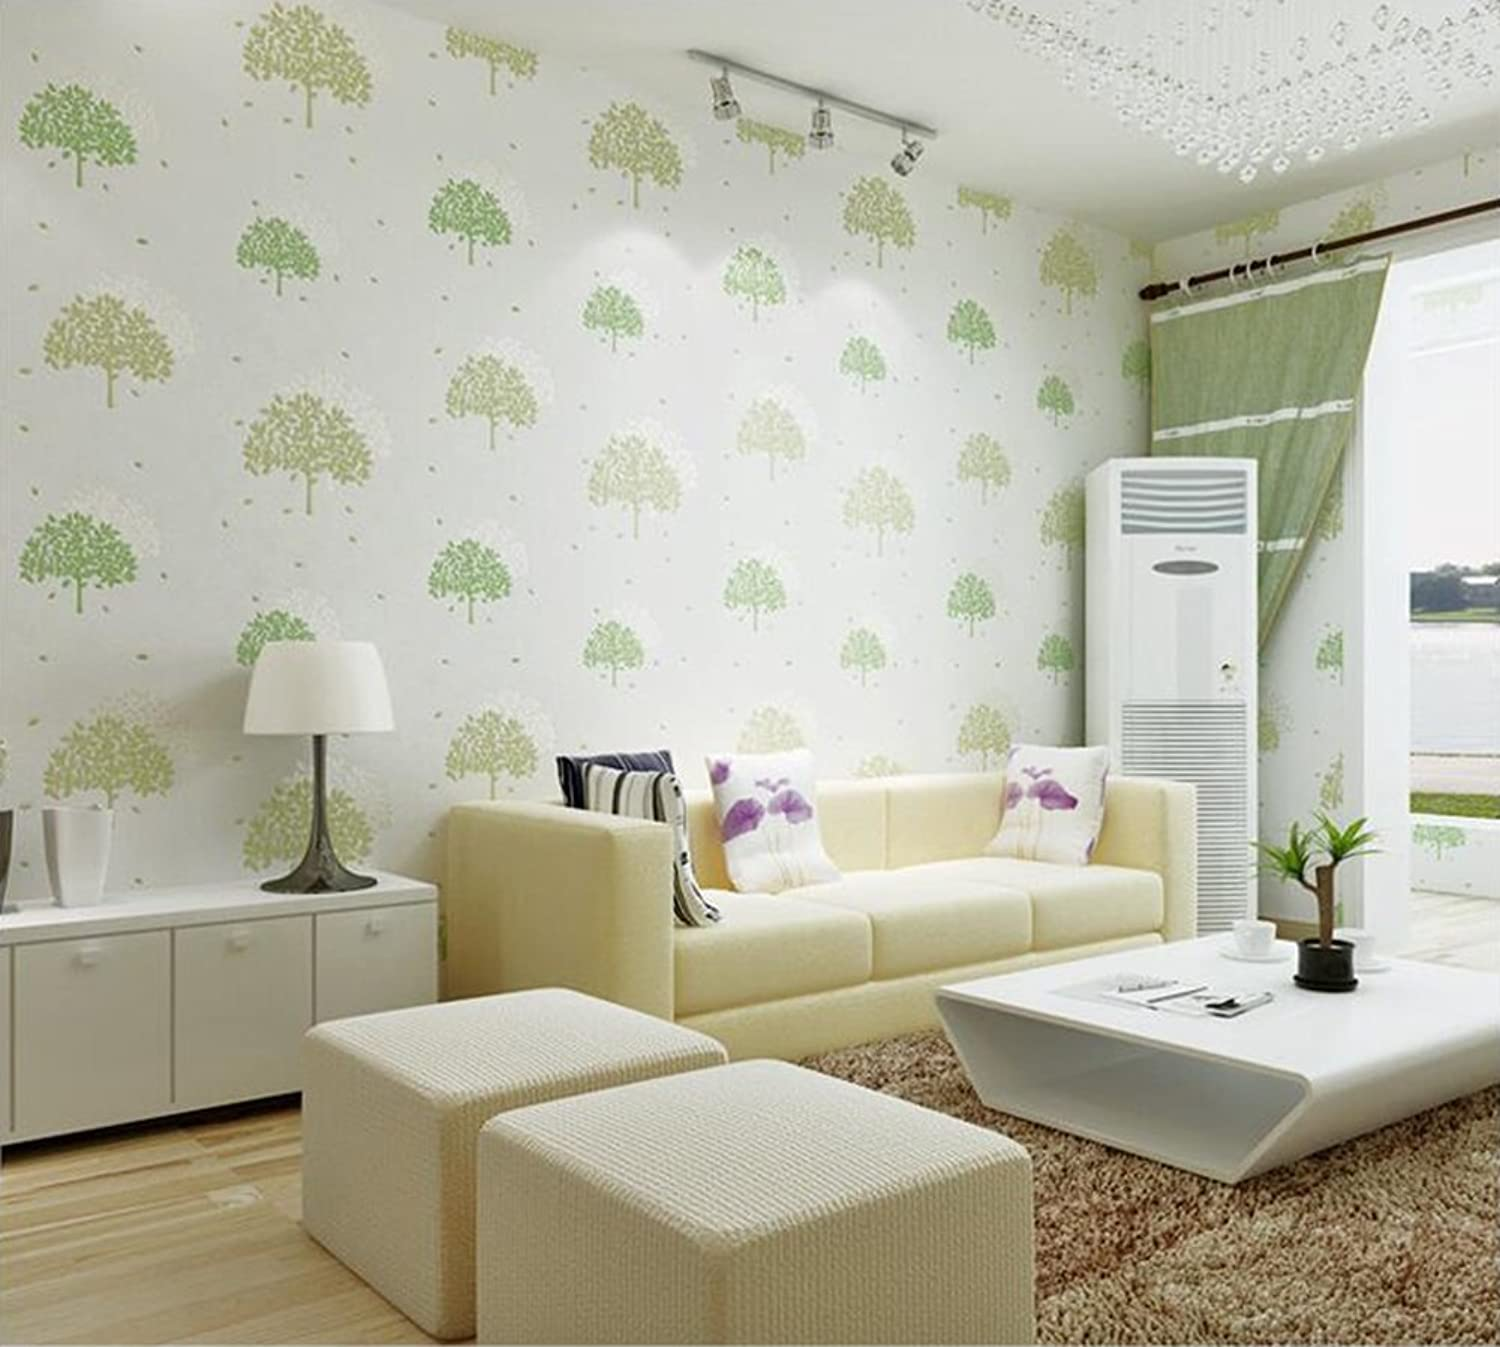 Wallpaper European Stereoscopic Flocking NonWoven Wallpaper Bedroom Living Room Wallpaper Background Wall Paper(0.53m10m) (color   A)